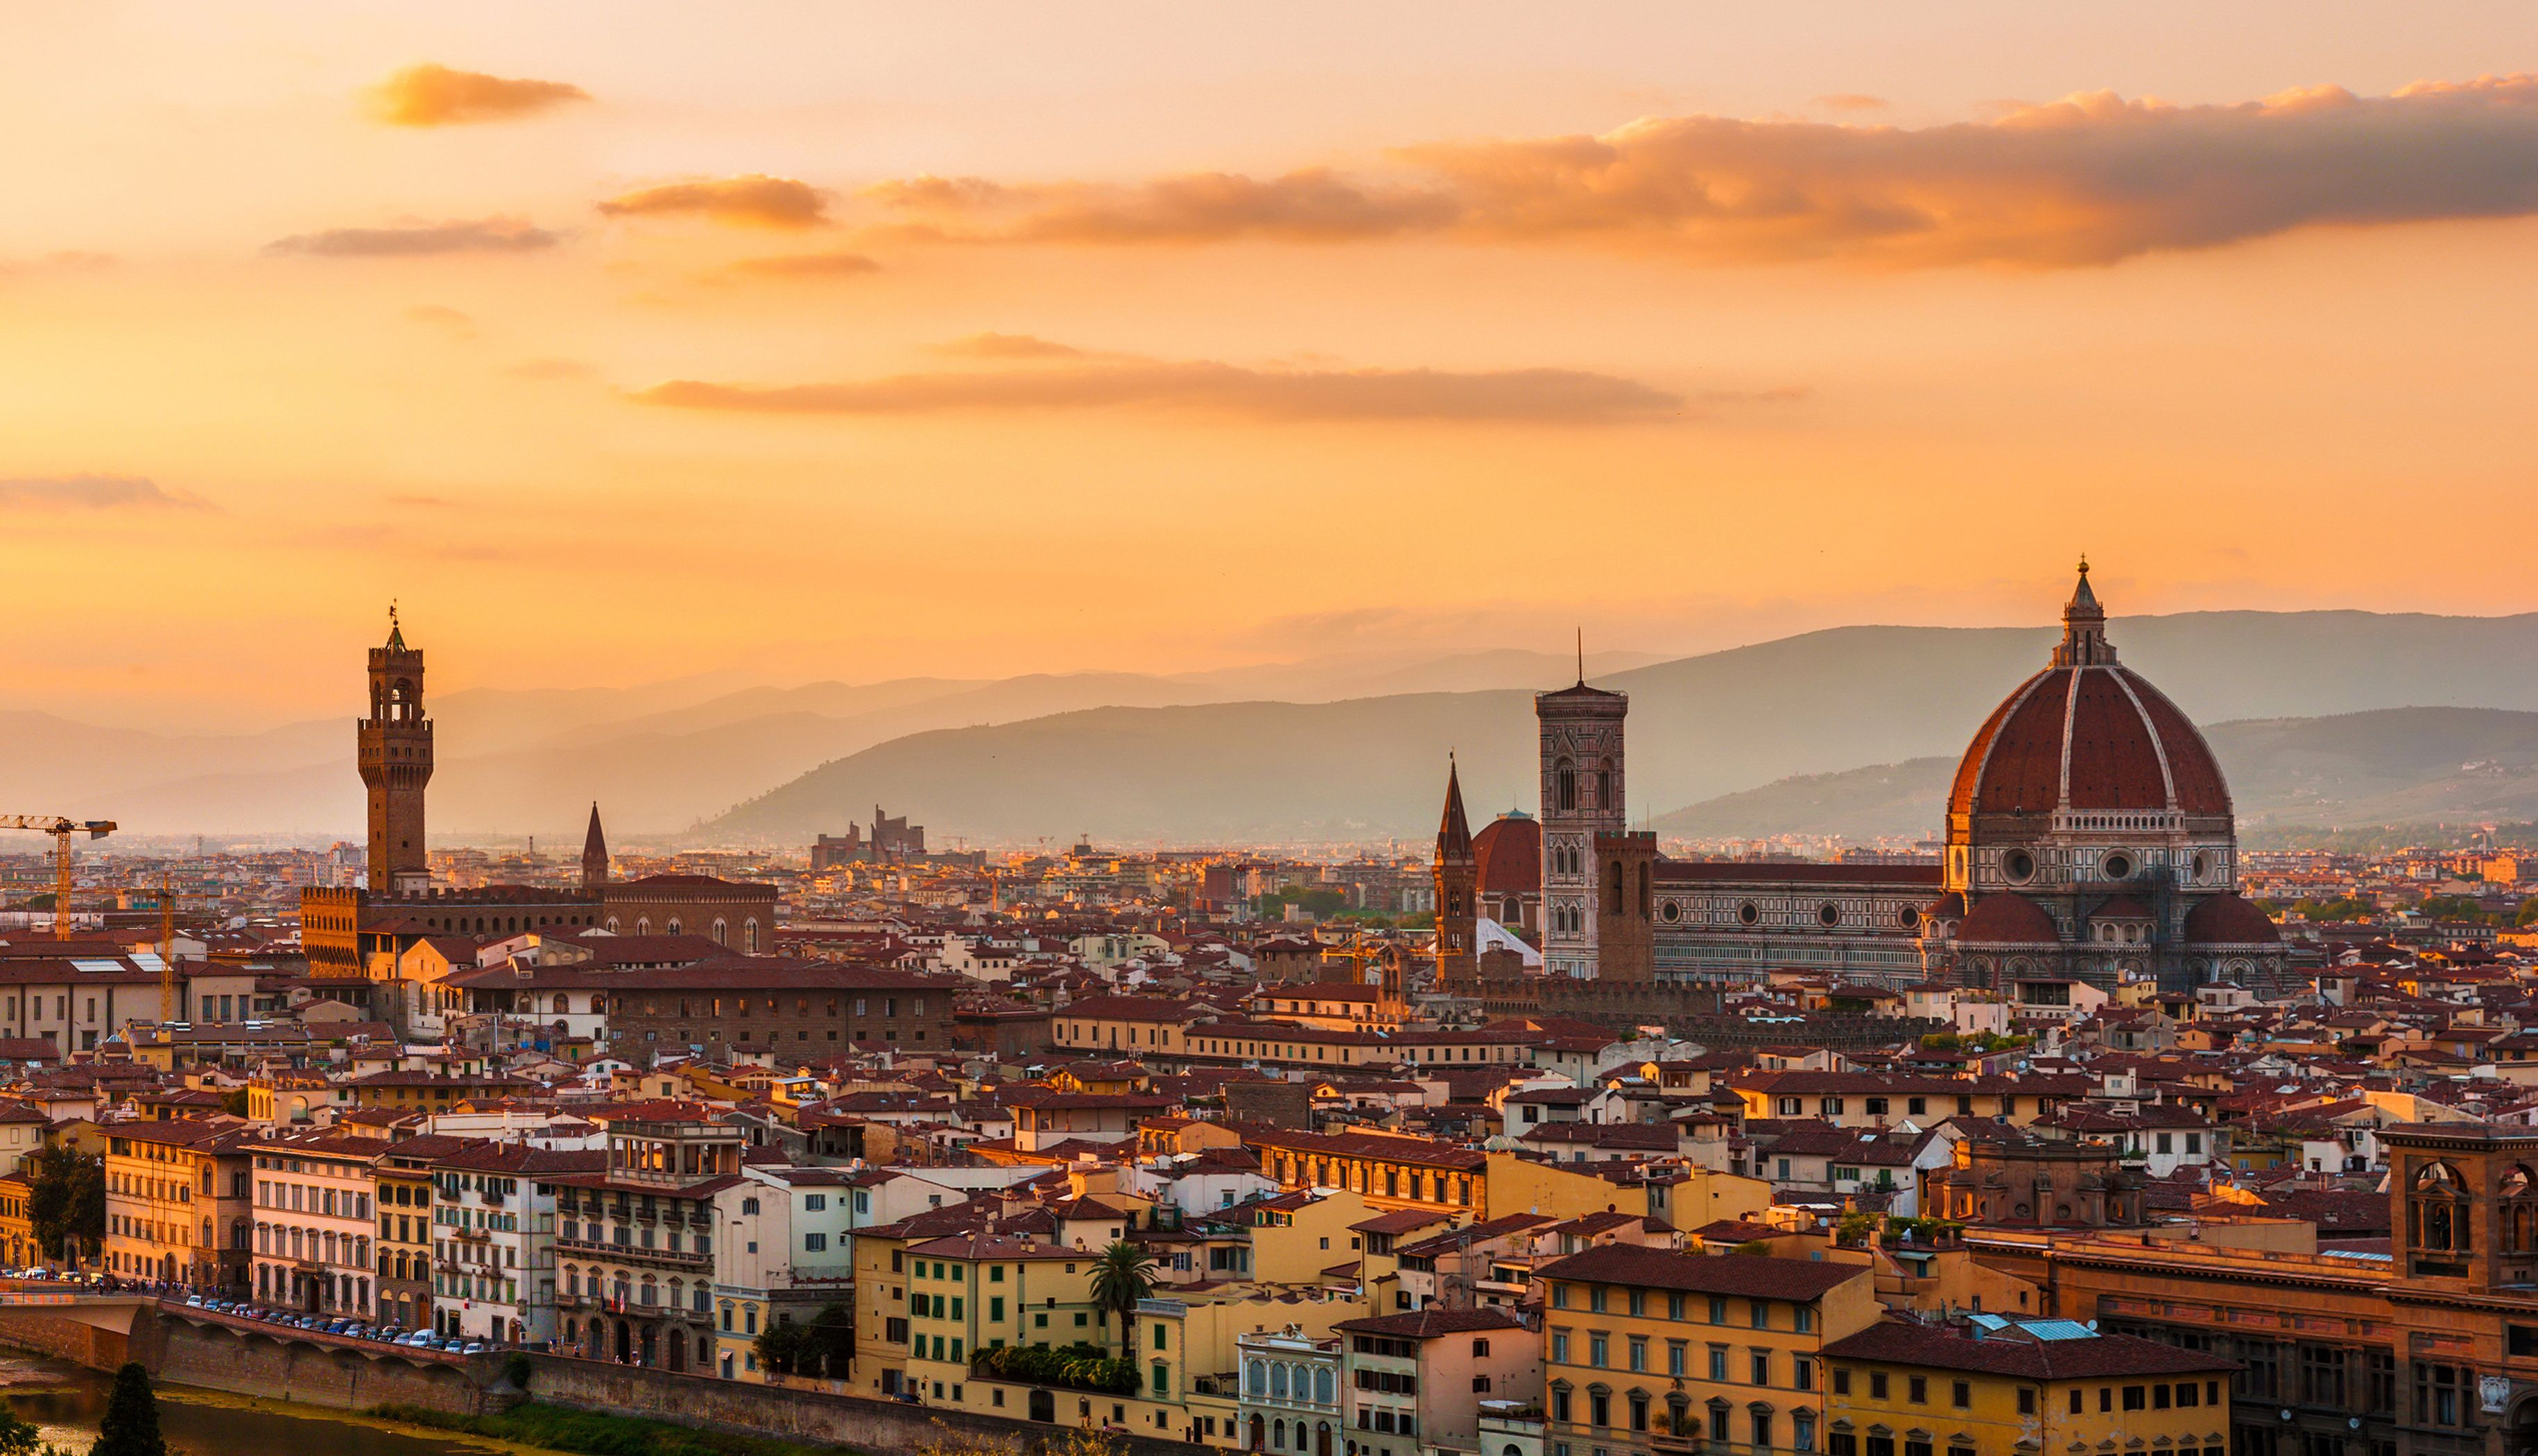 3660x2100 5561802 3660x2100 florence wallpaper for desktop | florence ...